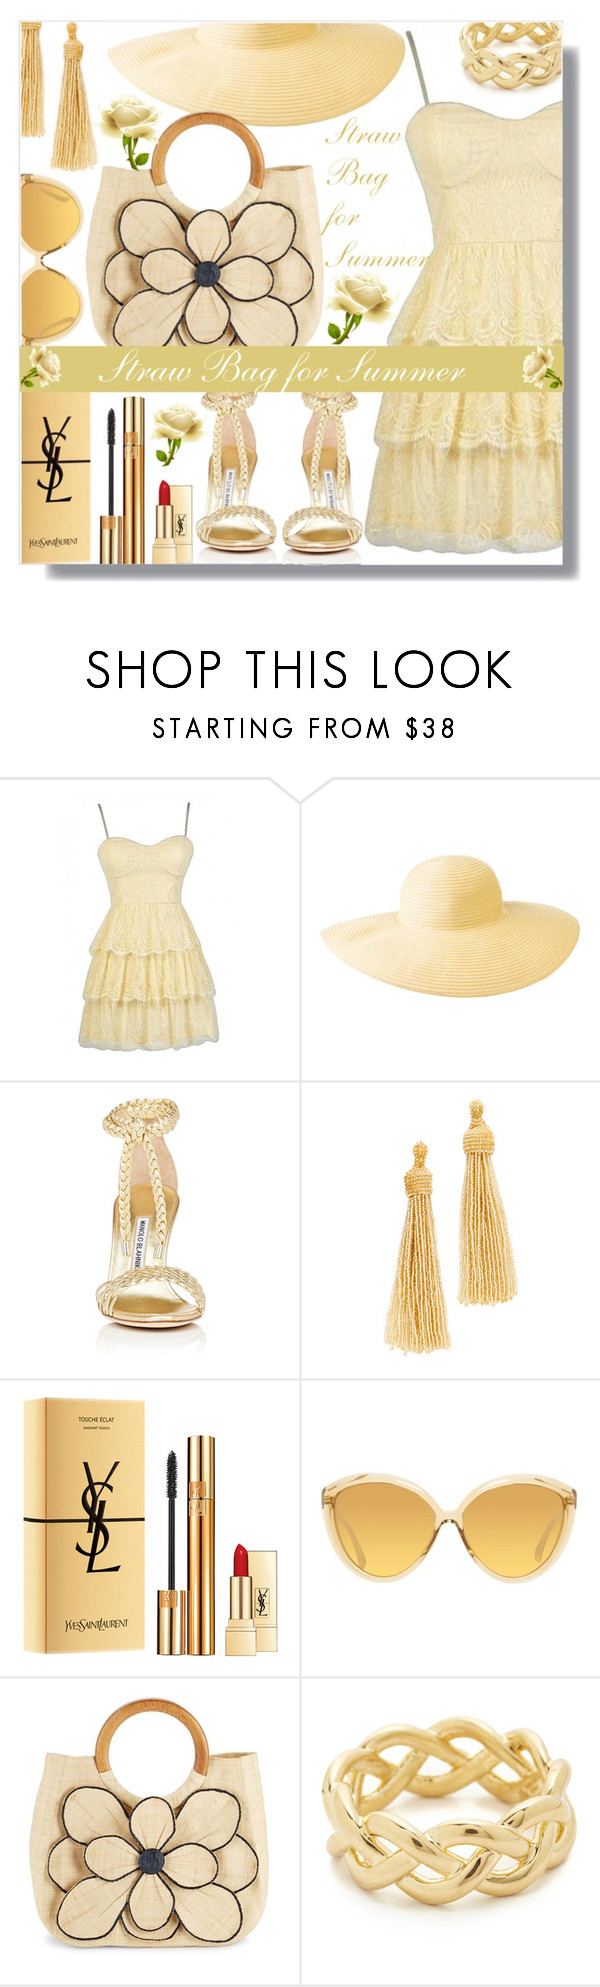 """Straw Bag for Summer - Contest!"" by sarahguo ❤ liked on Polyvore featuring Columbia, Manolo Blahnik, Kenneth Jay Lane, Yves Saint Laurent, Linda Farrow, Mar y Sol and Soave Oro"